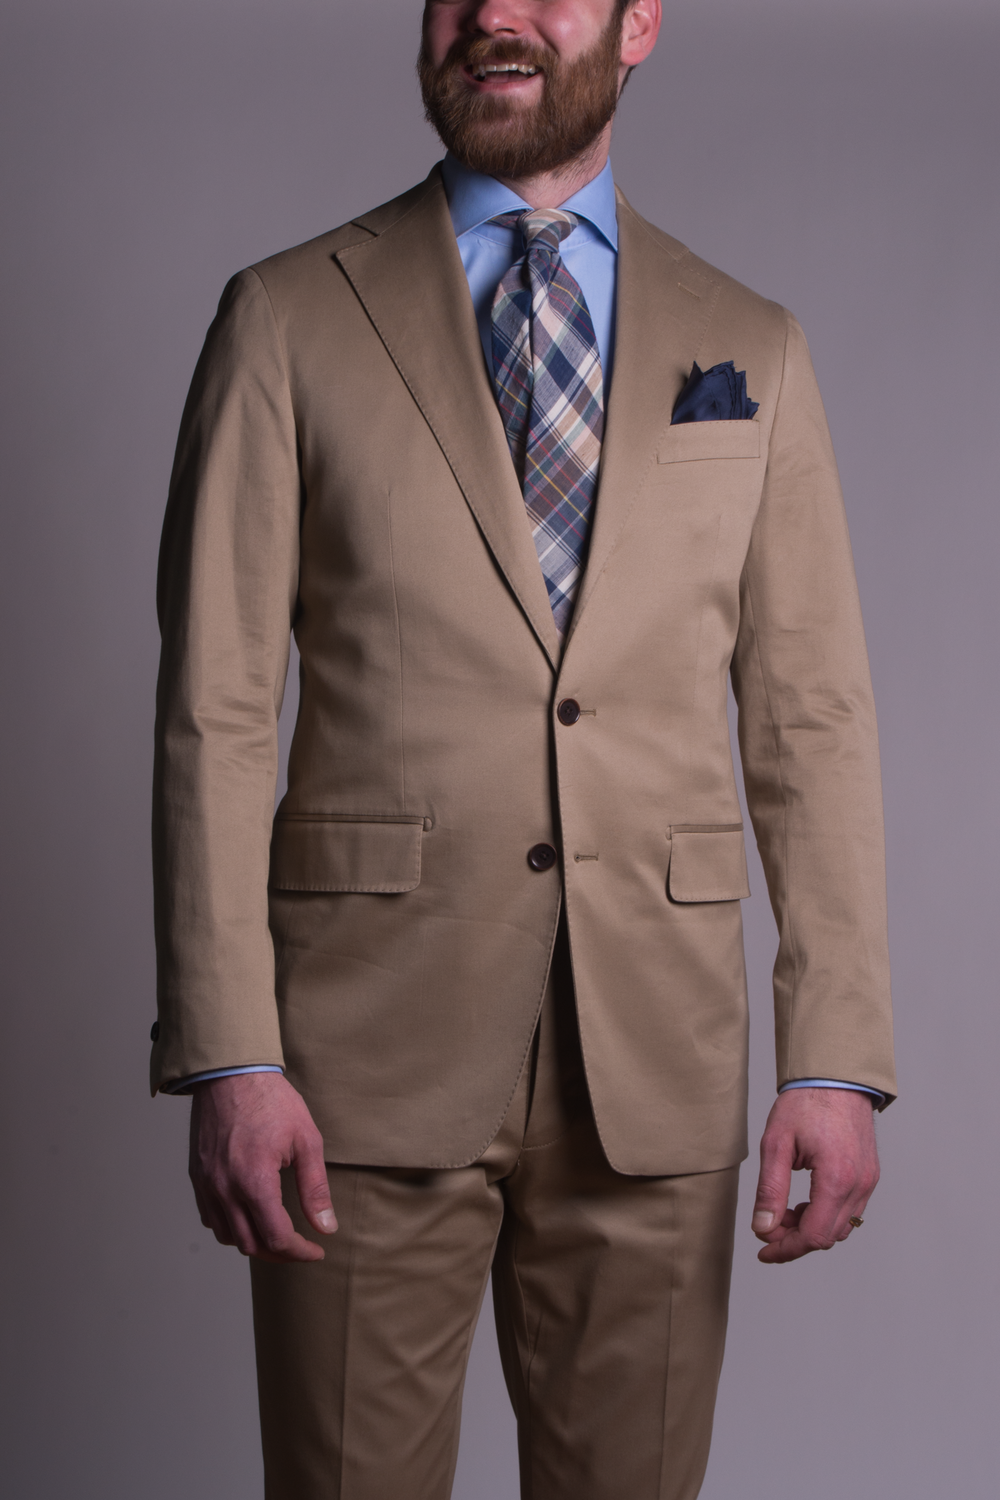 custom-suit-detroit-cotton-summer-suit